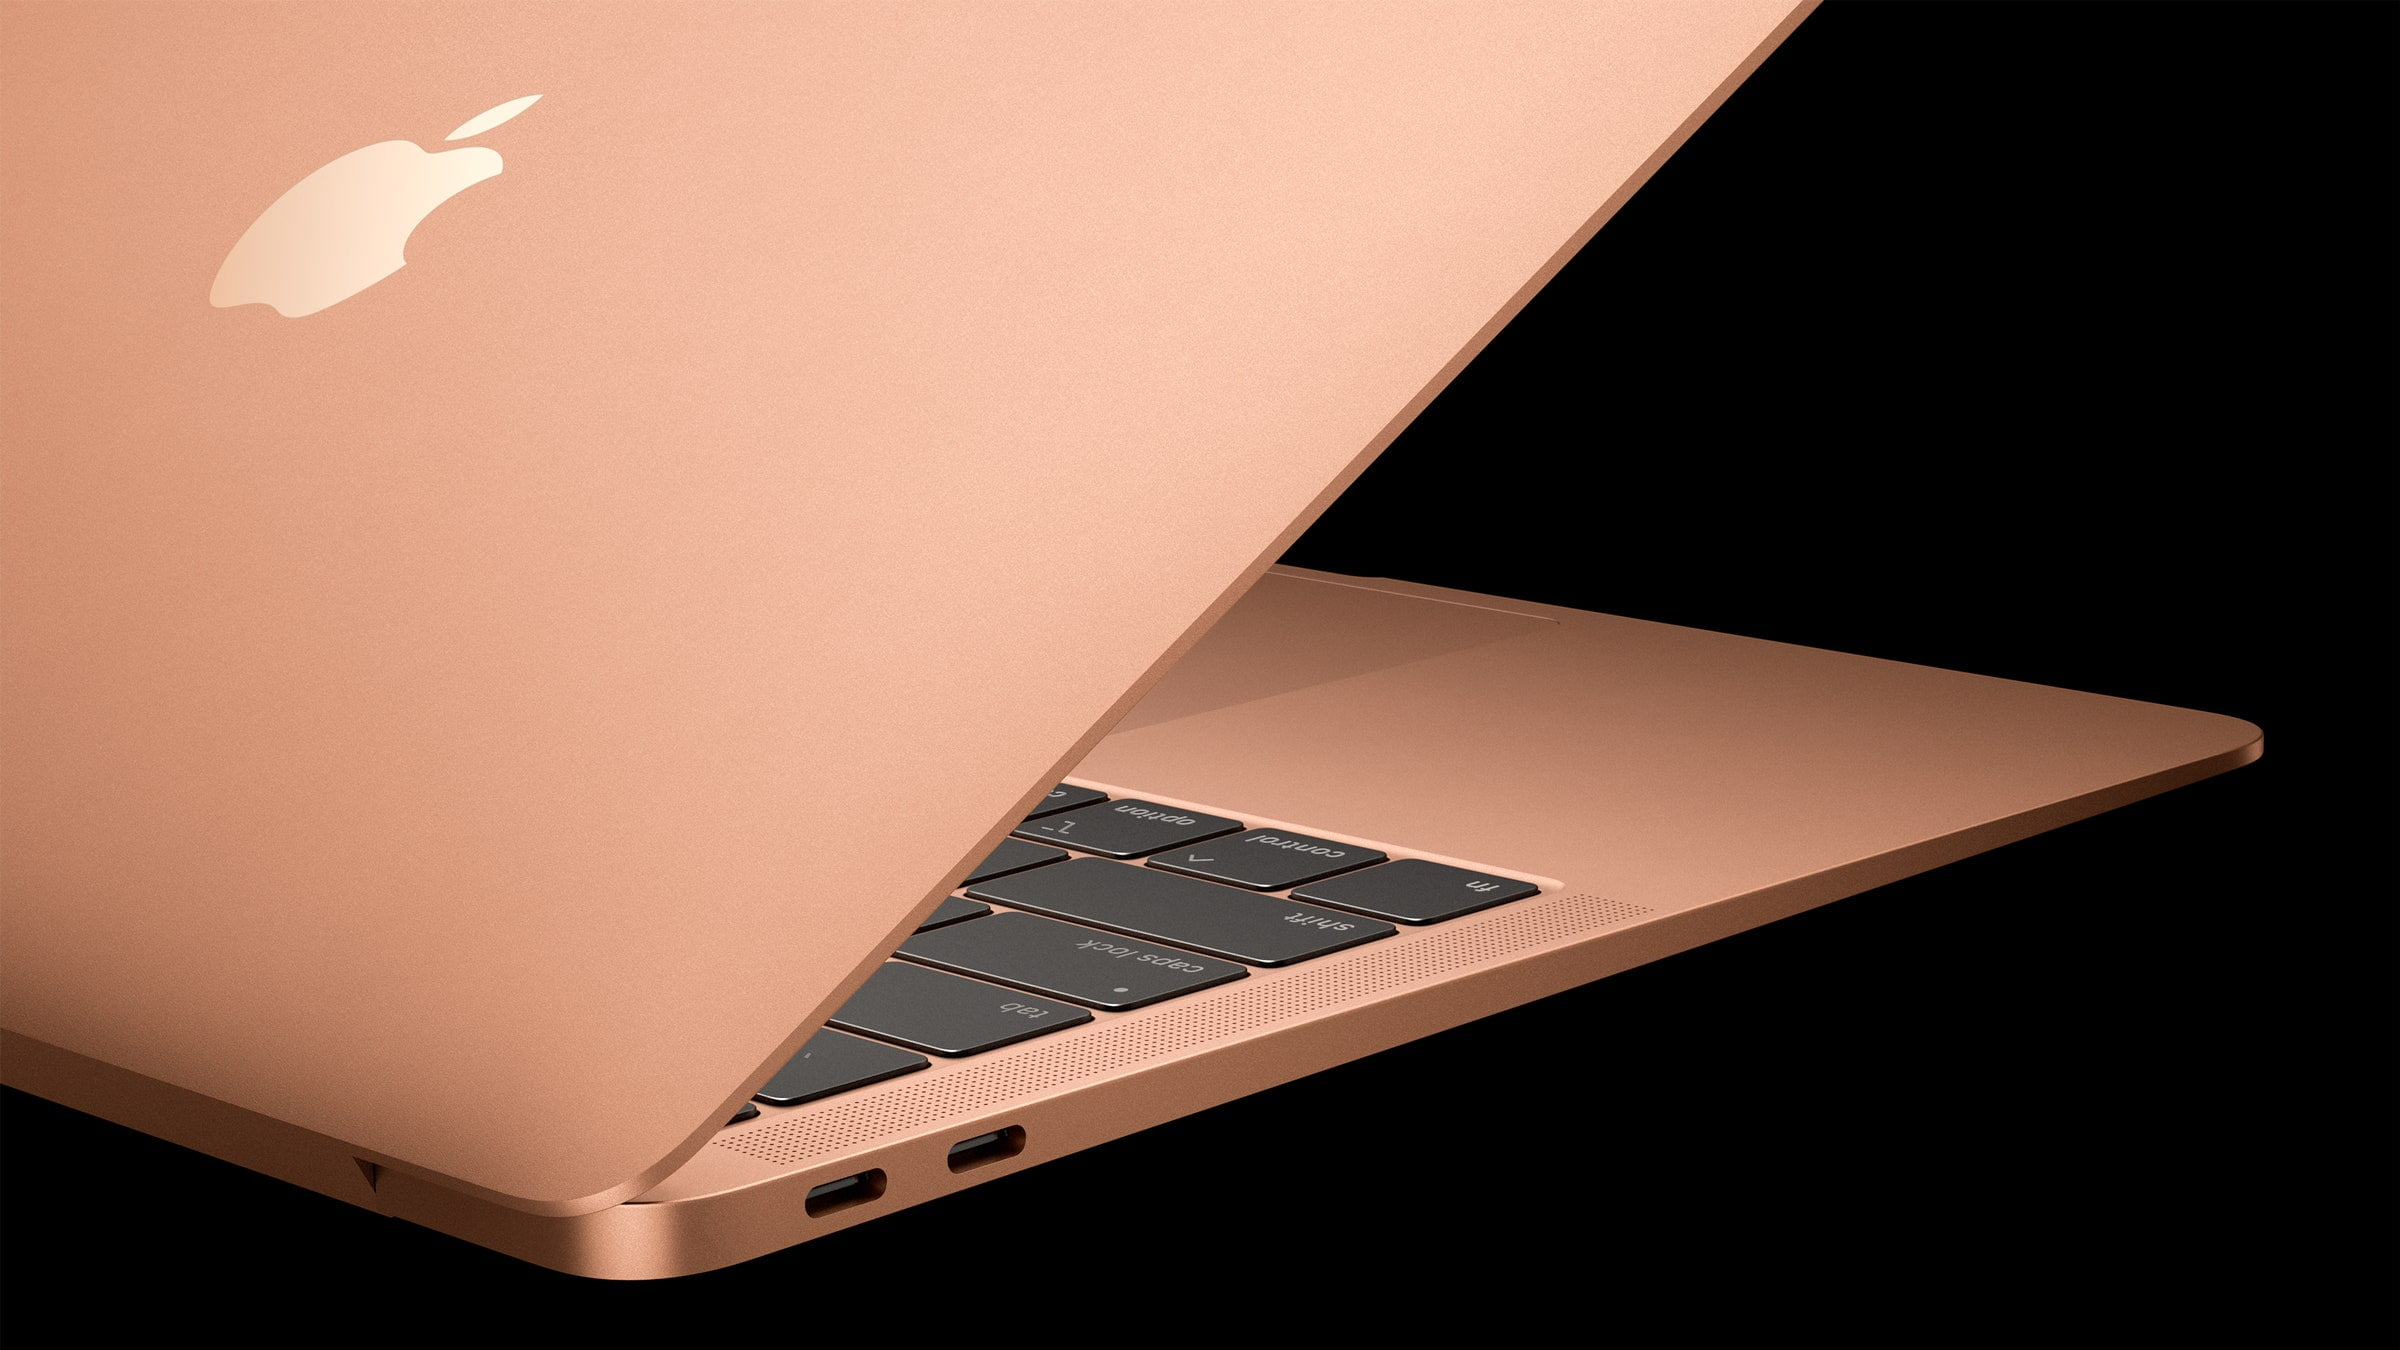 New Macs with Thunderbolt 3 would be thinner thanks to Intel